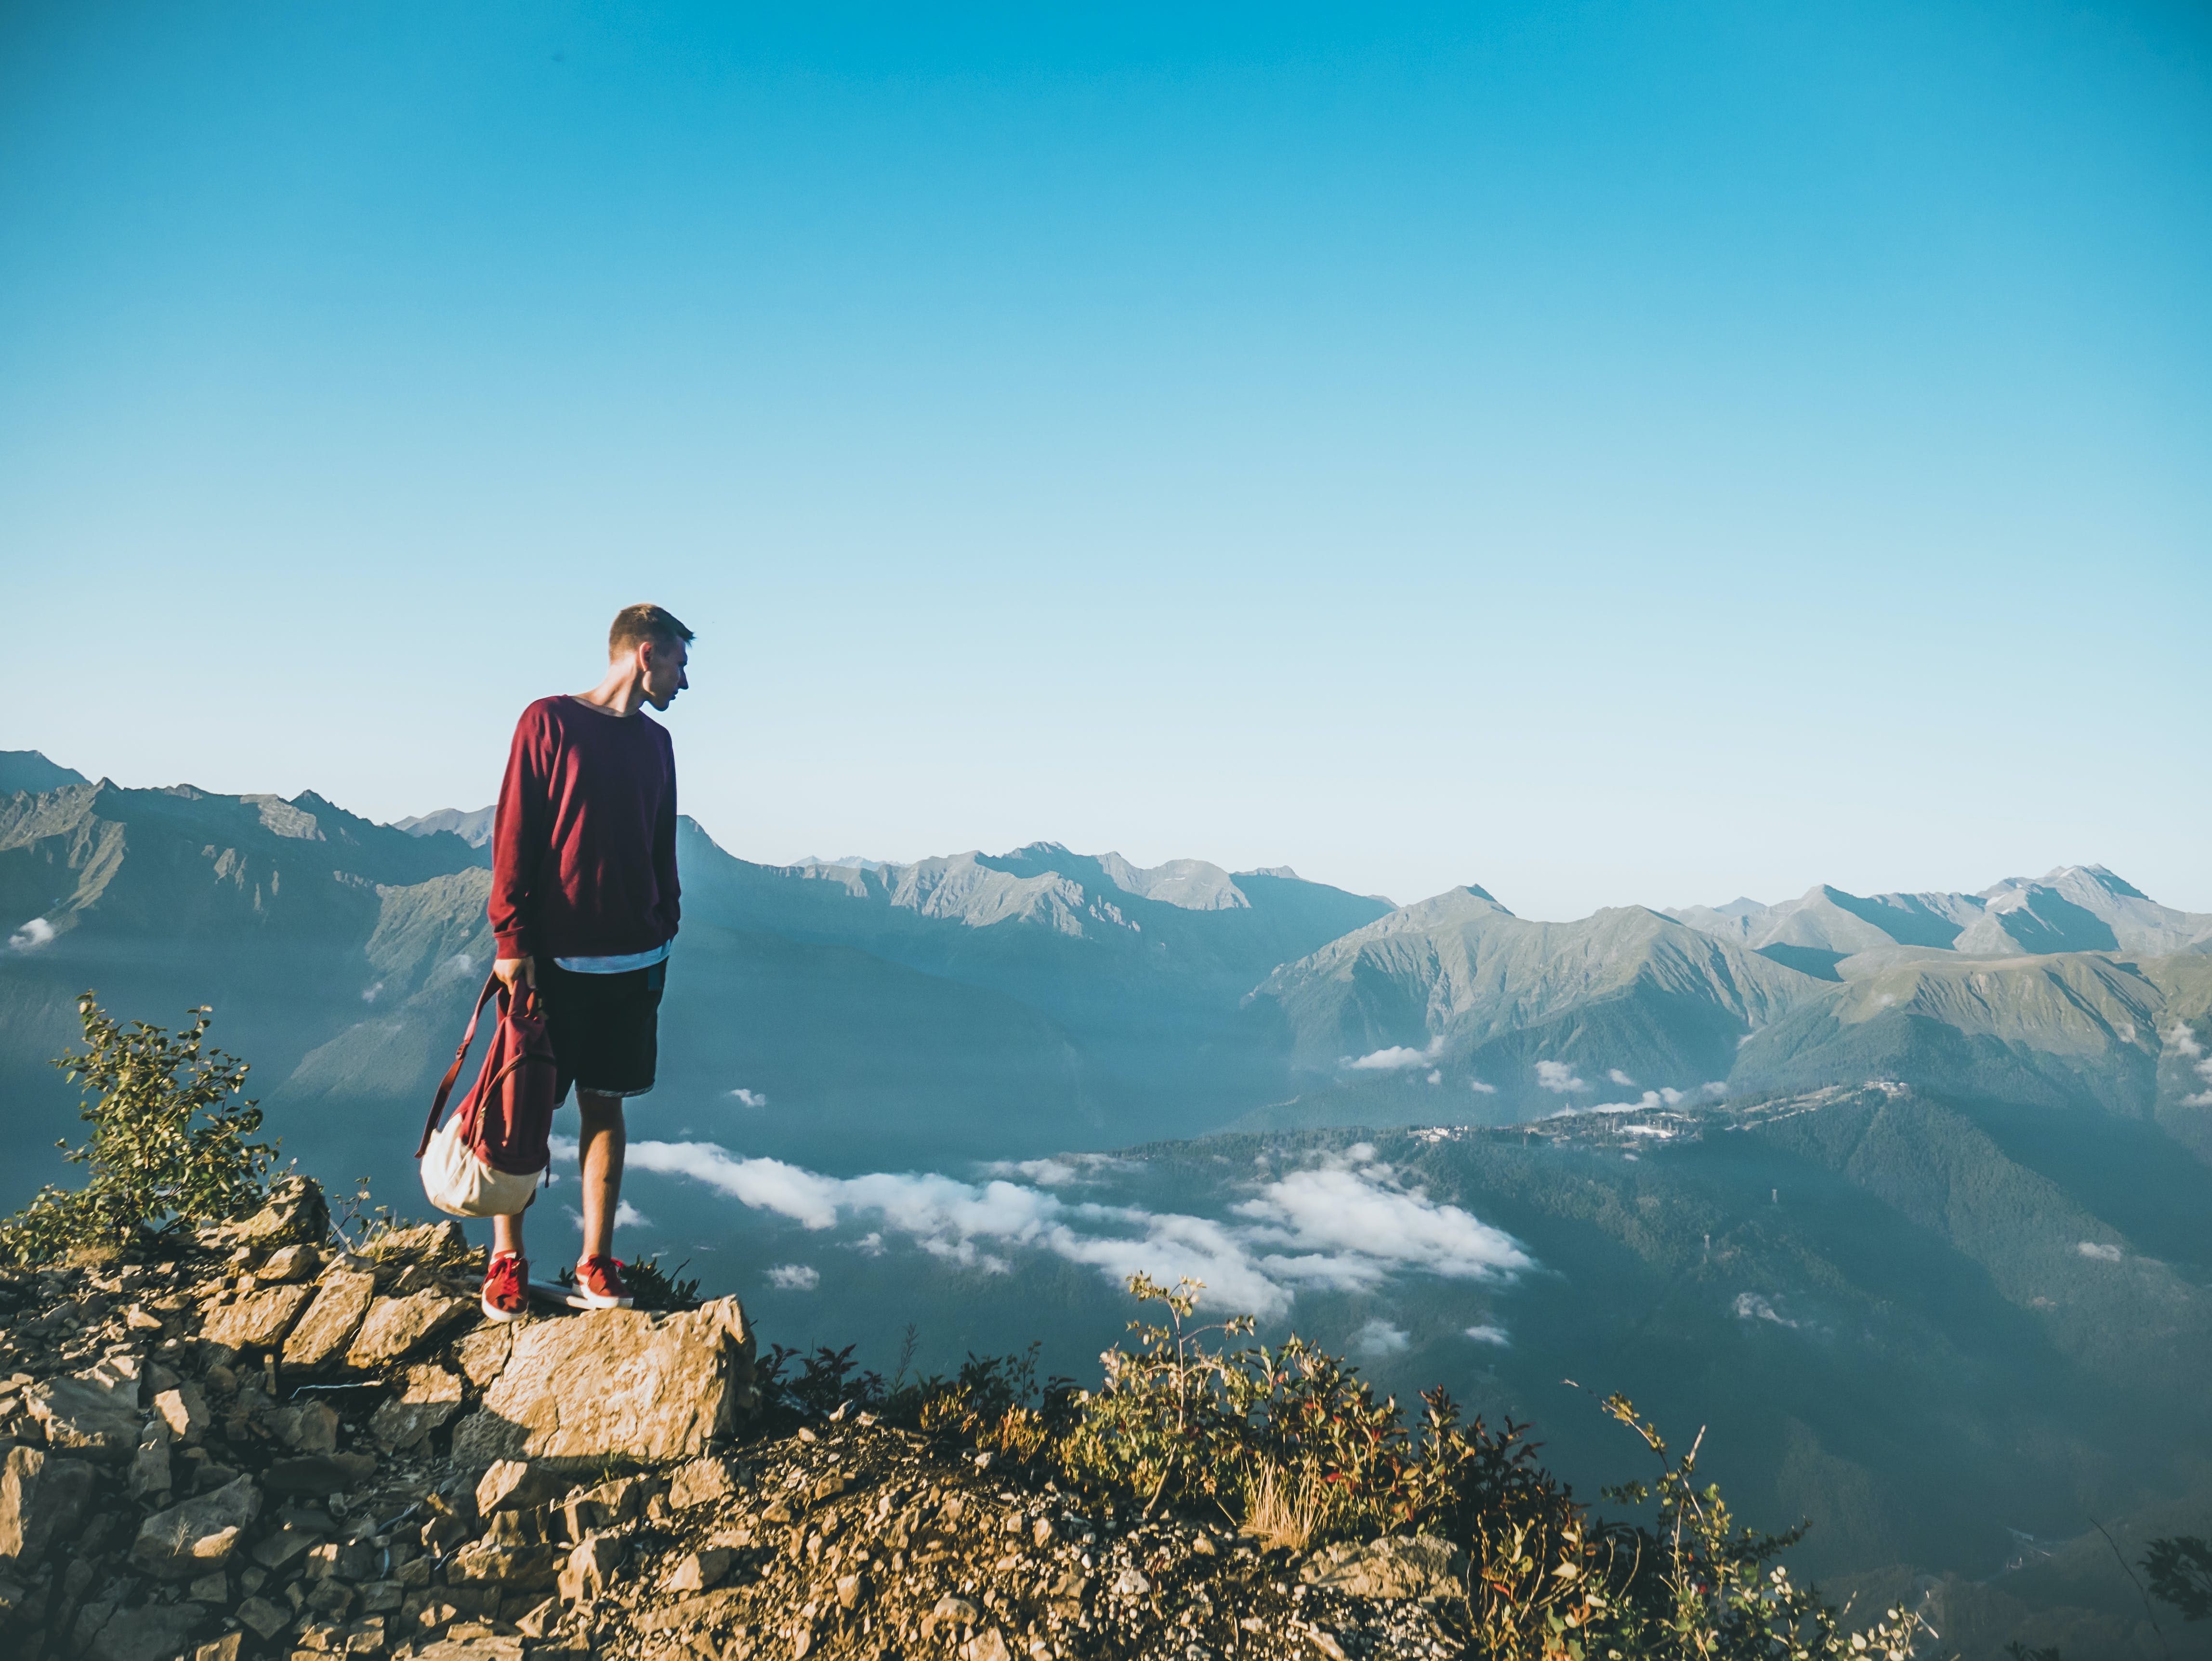 Man in Red Sweatshirt and Black Shorts Standing on Large Brown Rock on Top of a Mountain